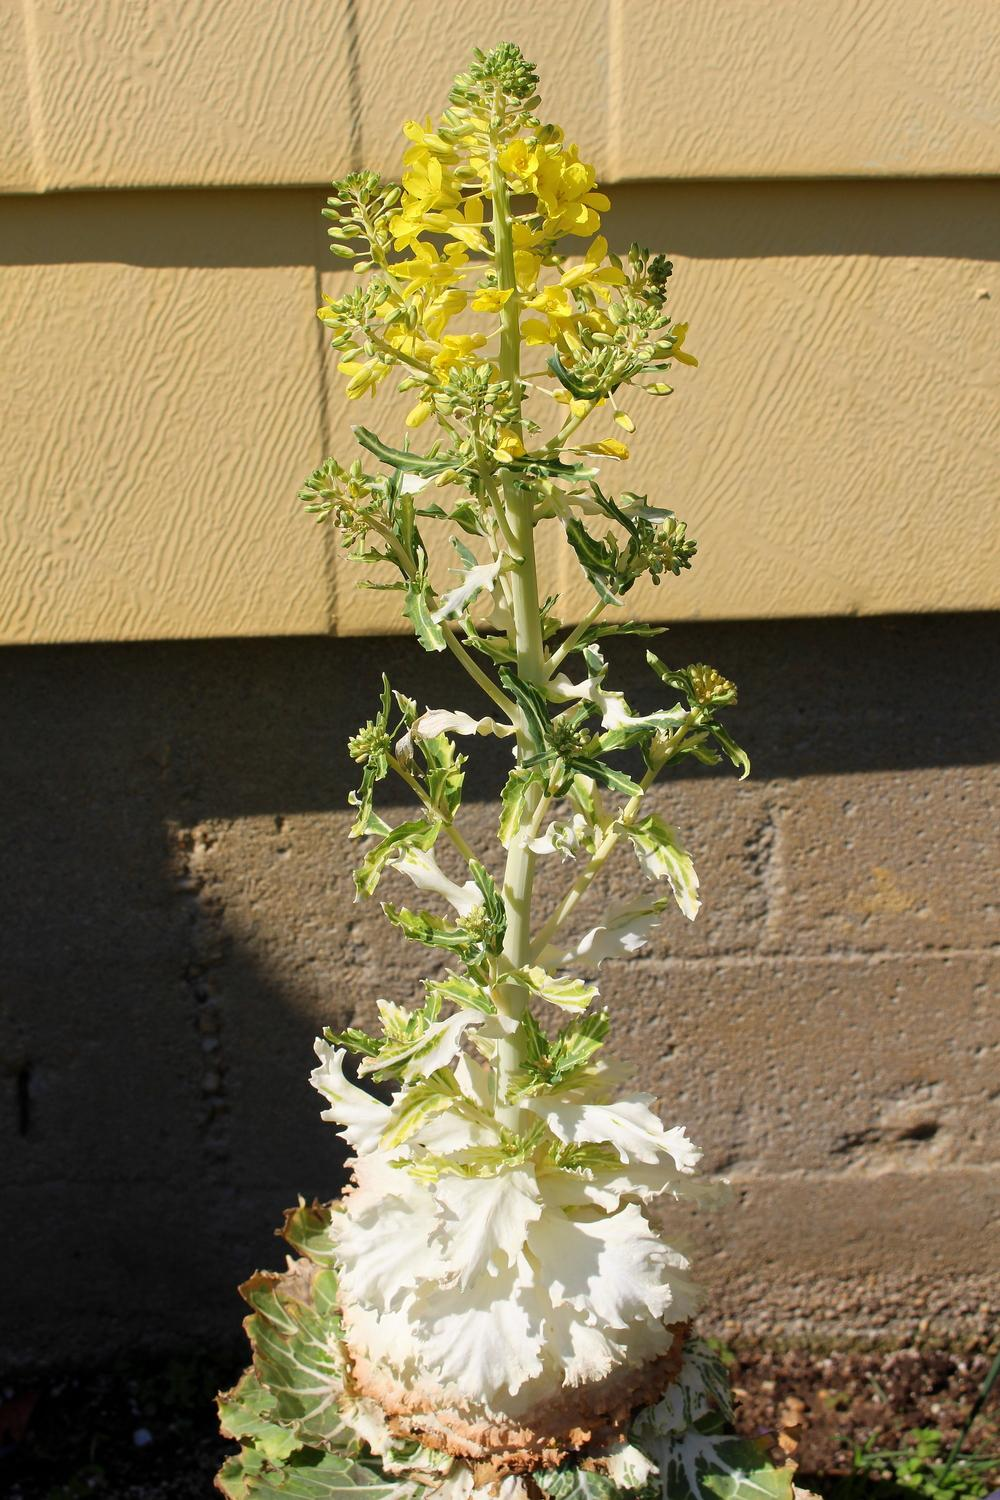 Photo of Flowering Cabbage (Brassica oleracea var. viridis 'Nagoya White') uploaded by keithp2012